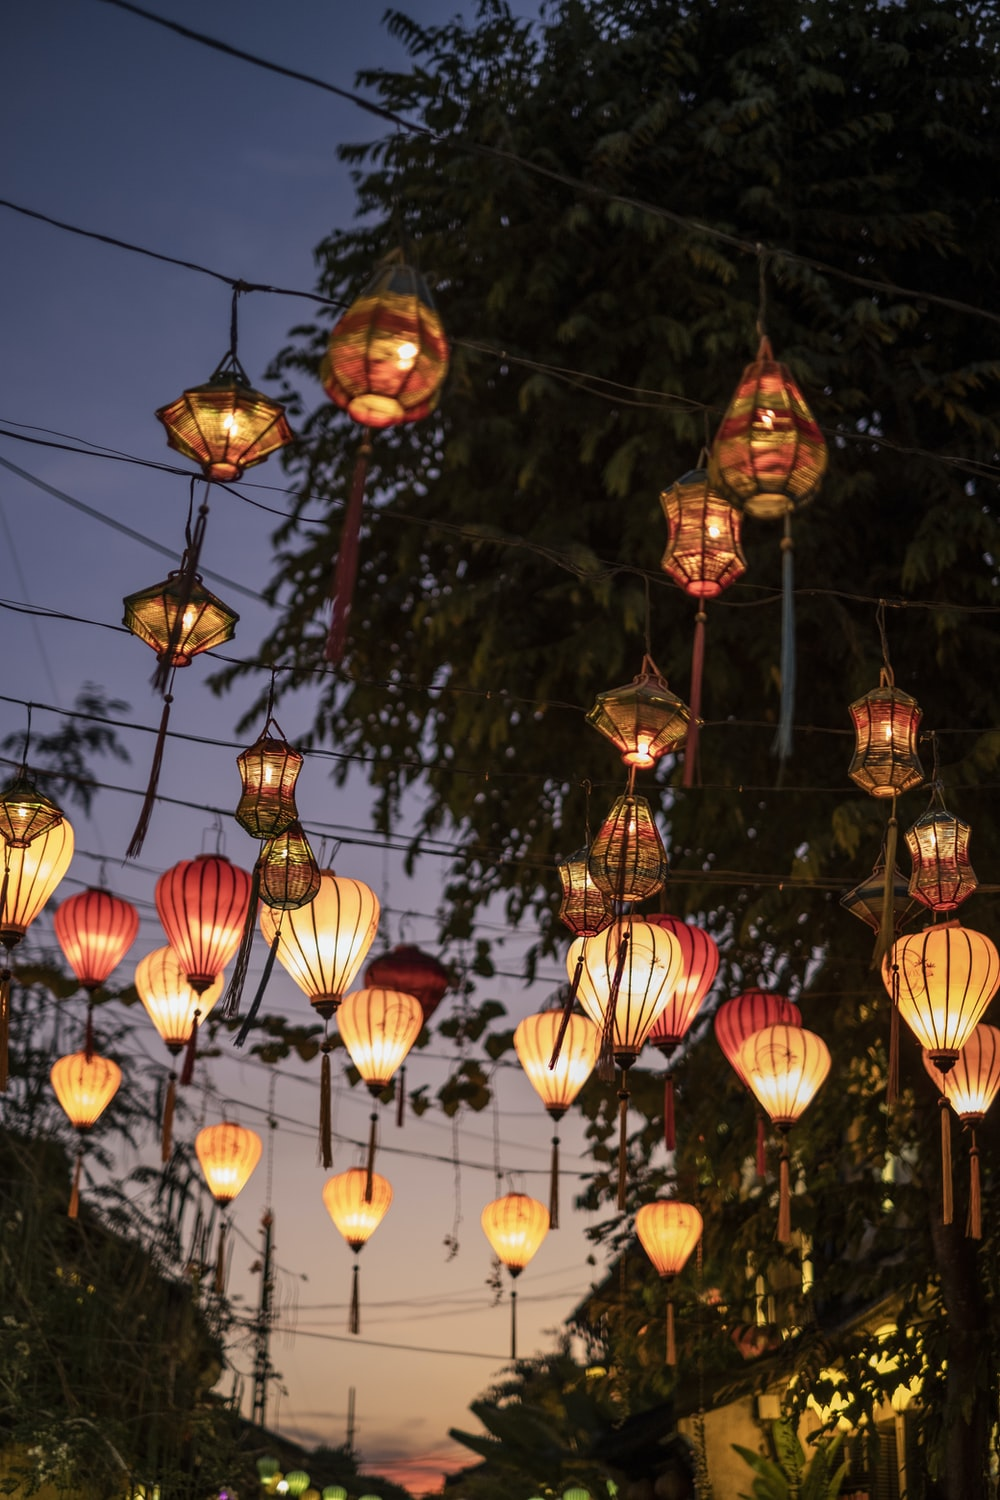 lighted lantern hanging over street